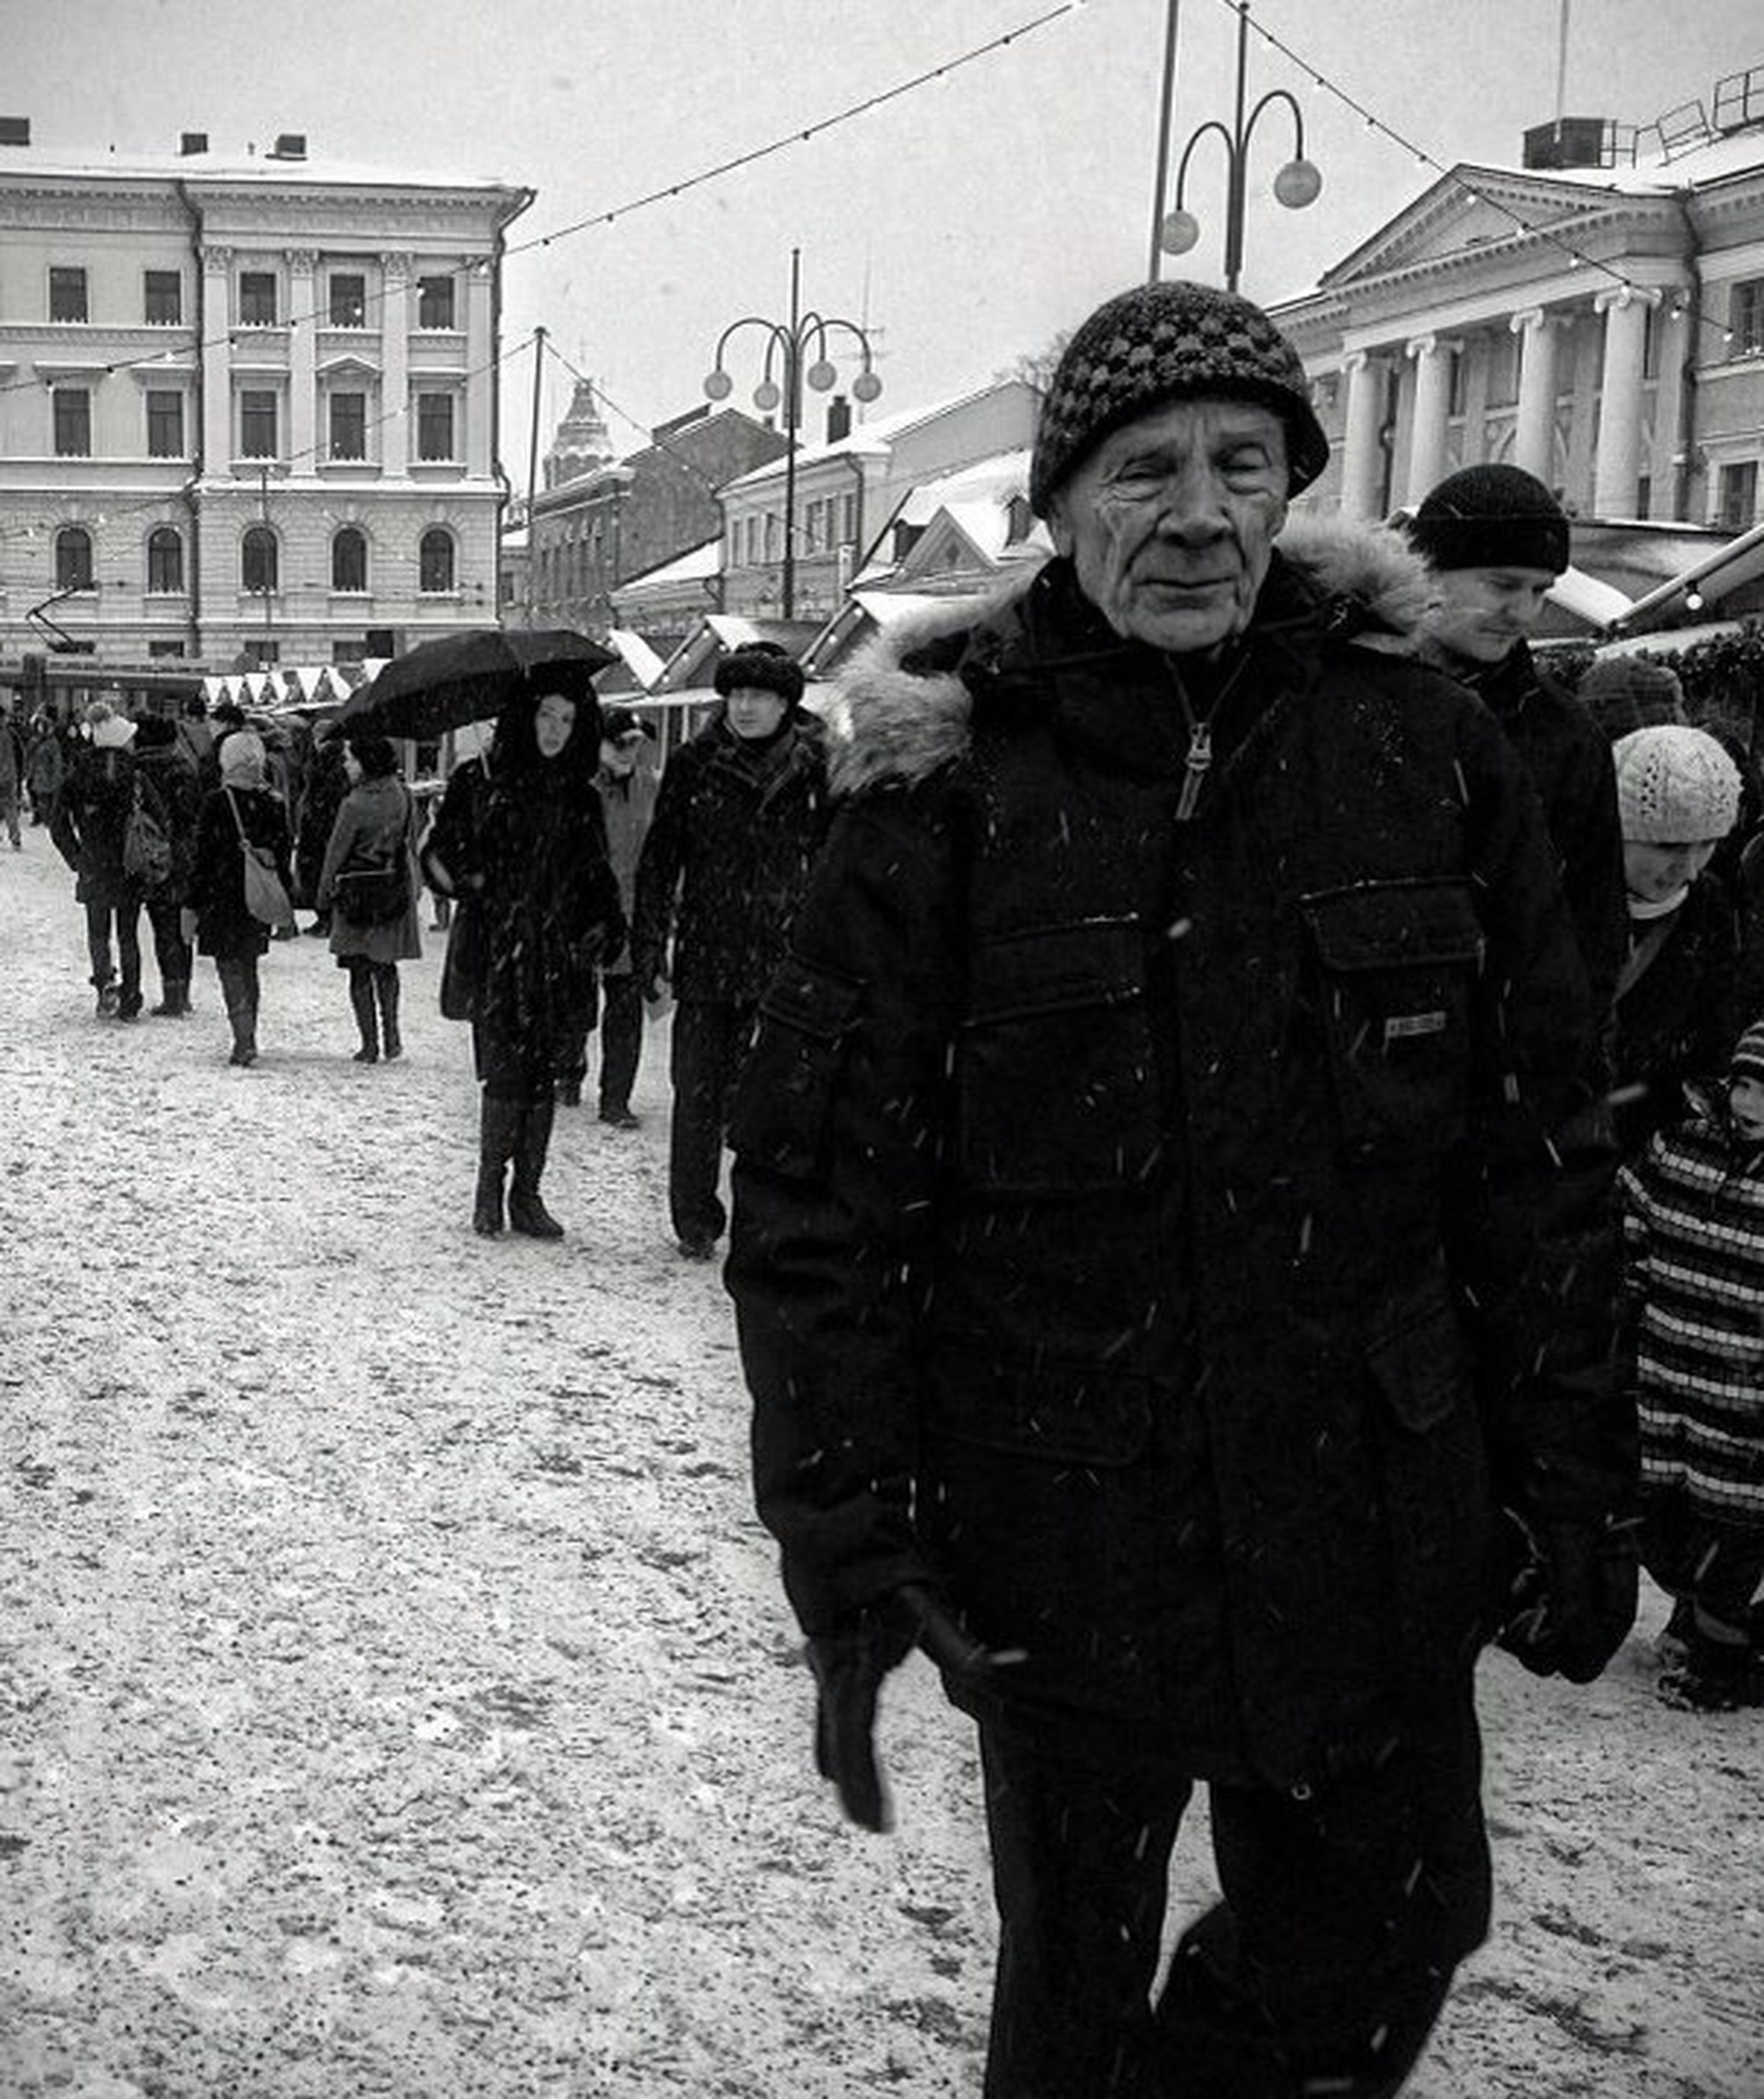 lifestyles, building exterior, men, architecture, built structure, leisure activity, casual clothing, walking, warm clothing, full length, person, winter, standing, street, rear view, cold temperature, large group of people, snow